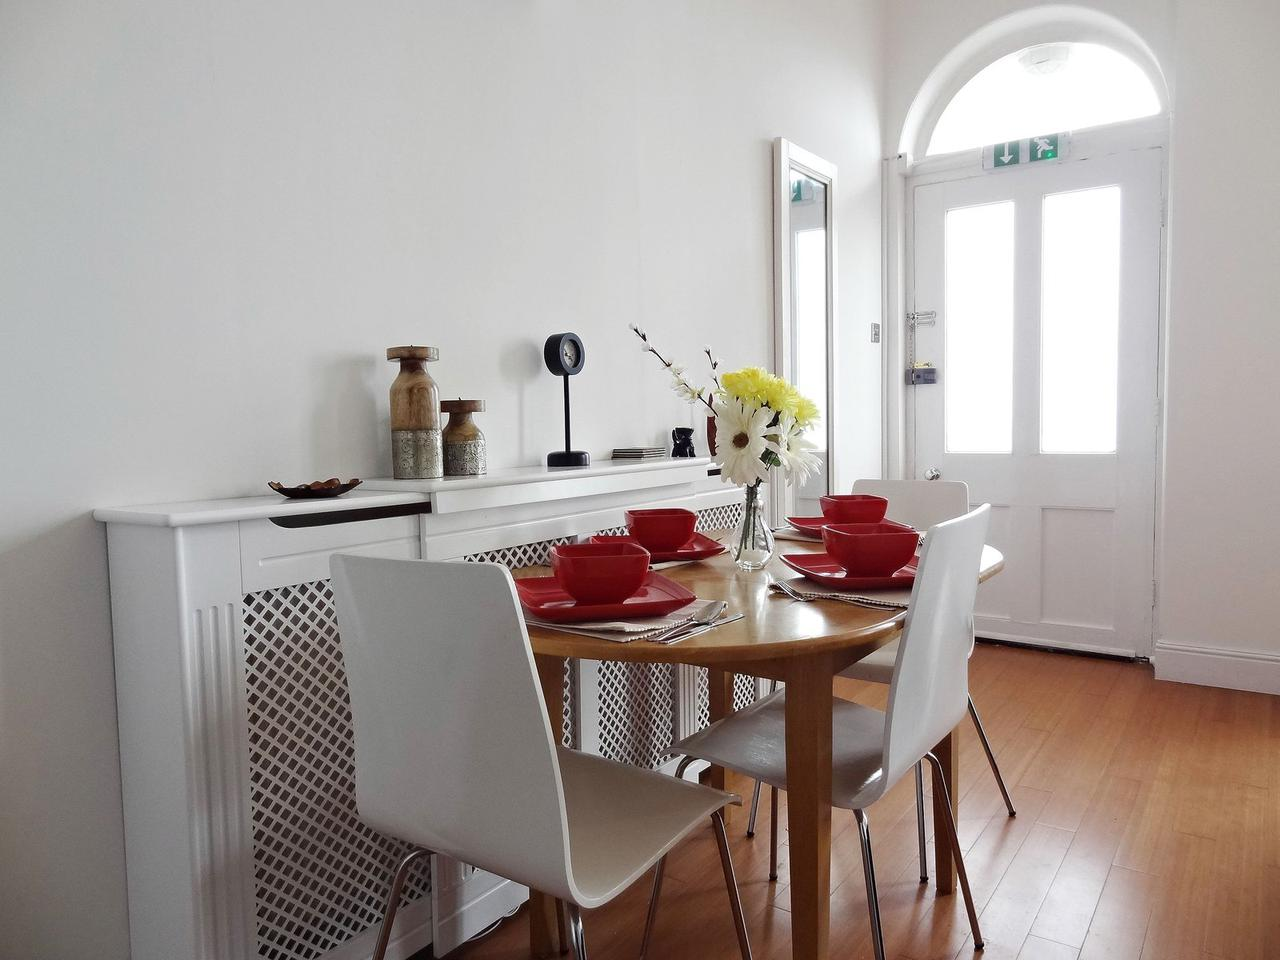 Beachfront Apartment, Brighton & Hove Images - 3